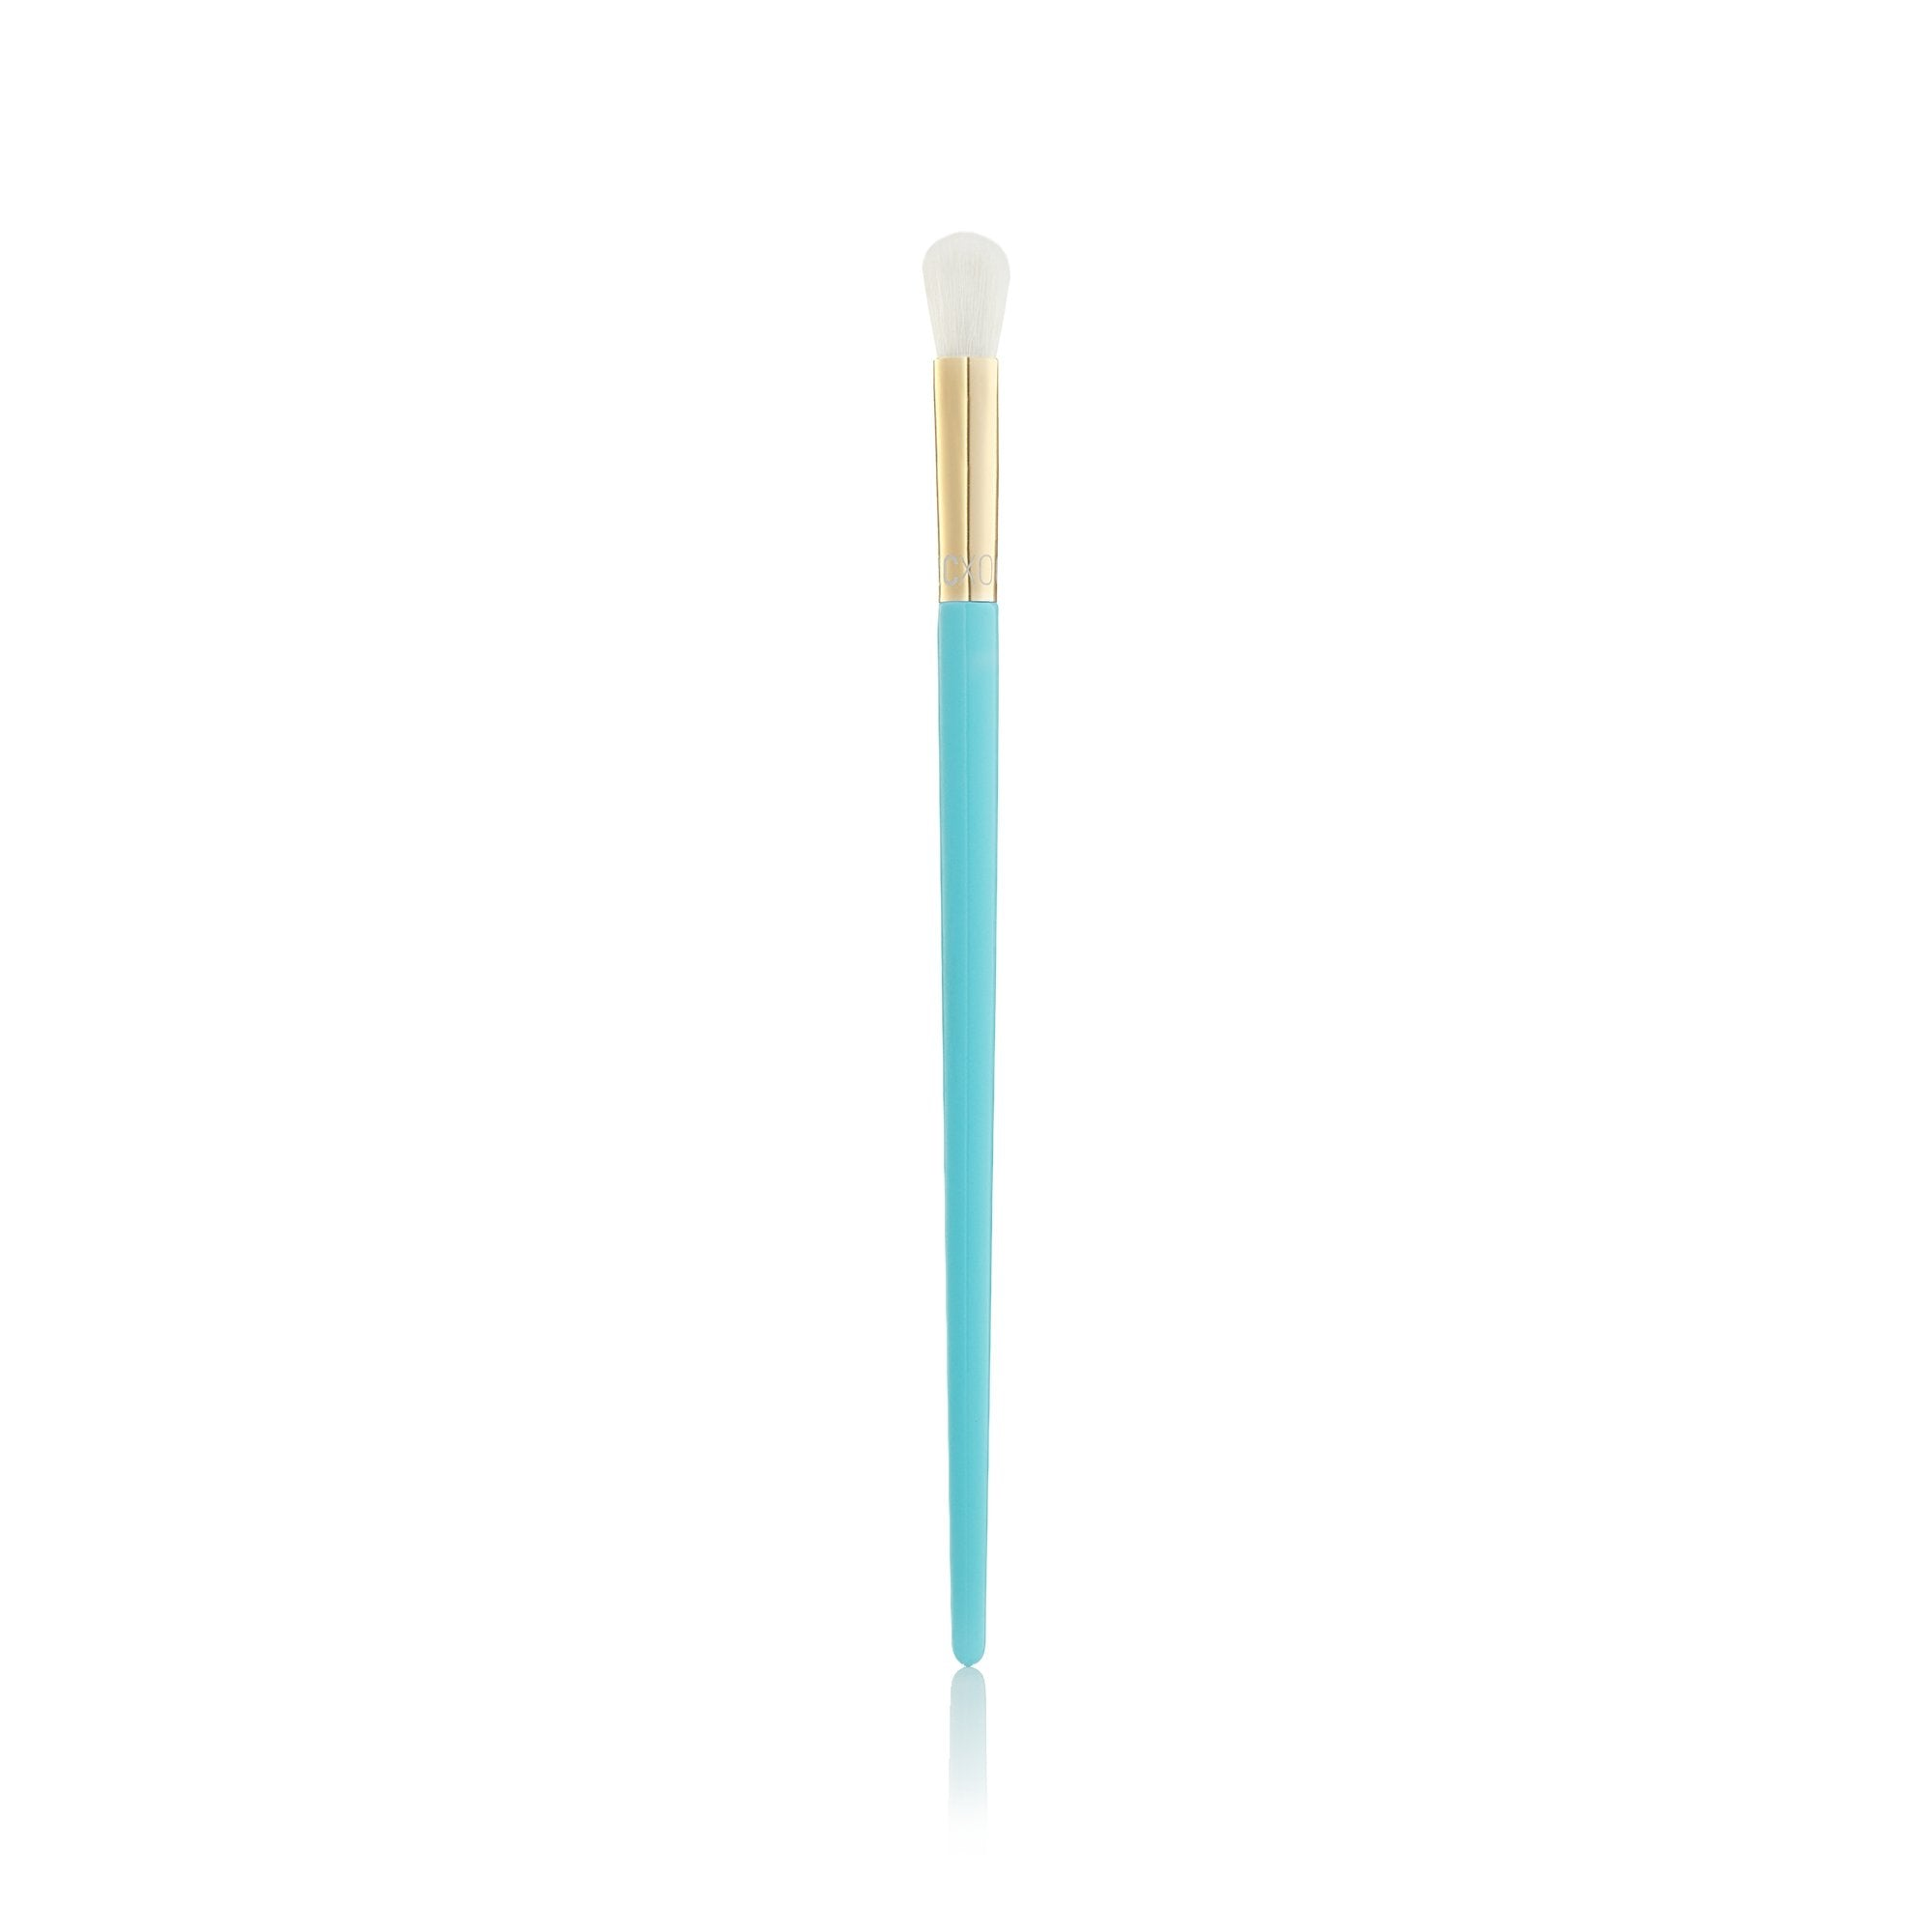 CXO BLENDING BRUSH - CRUSHXO